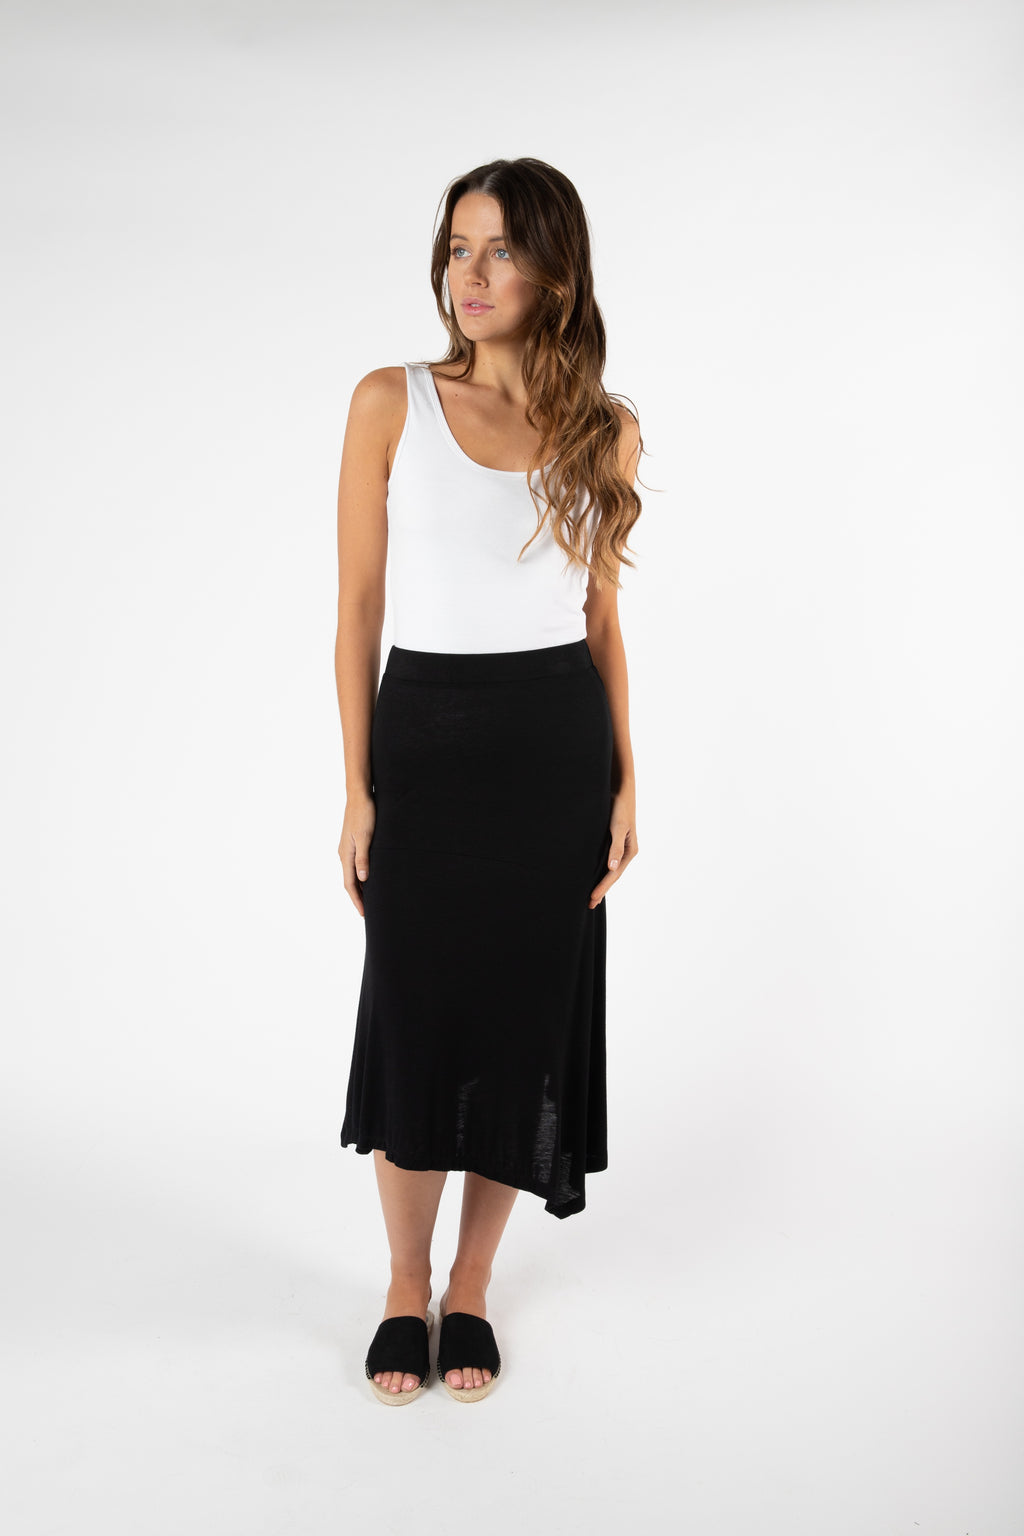 Betty Basics - San Pablo skirt - Black